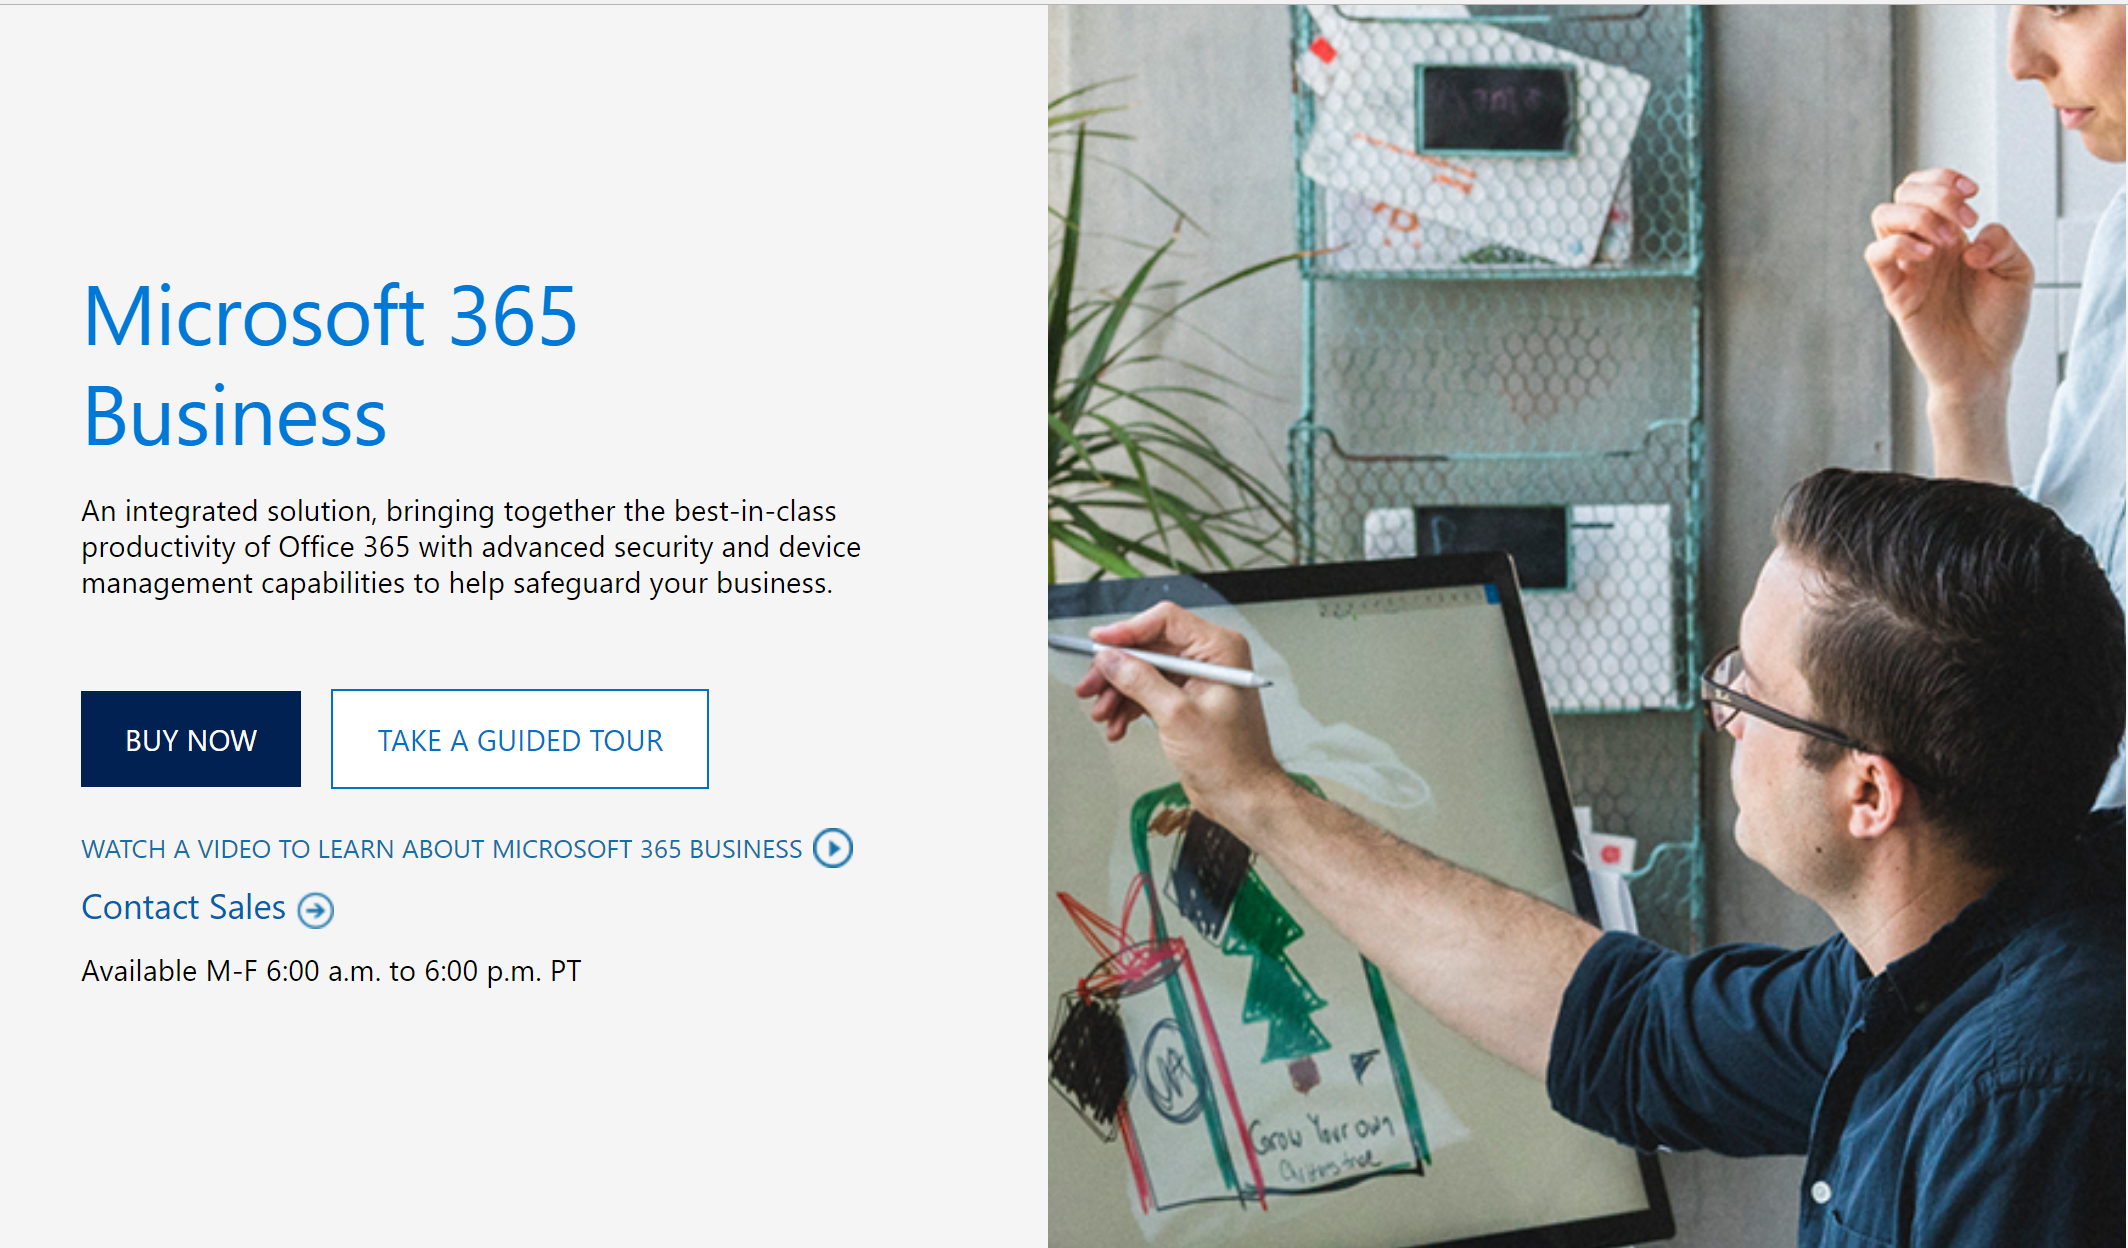 Microsoft 365 Business Reviews 2019: Details, Pricing